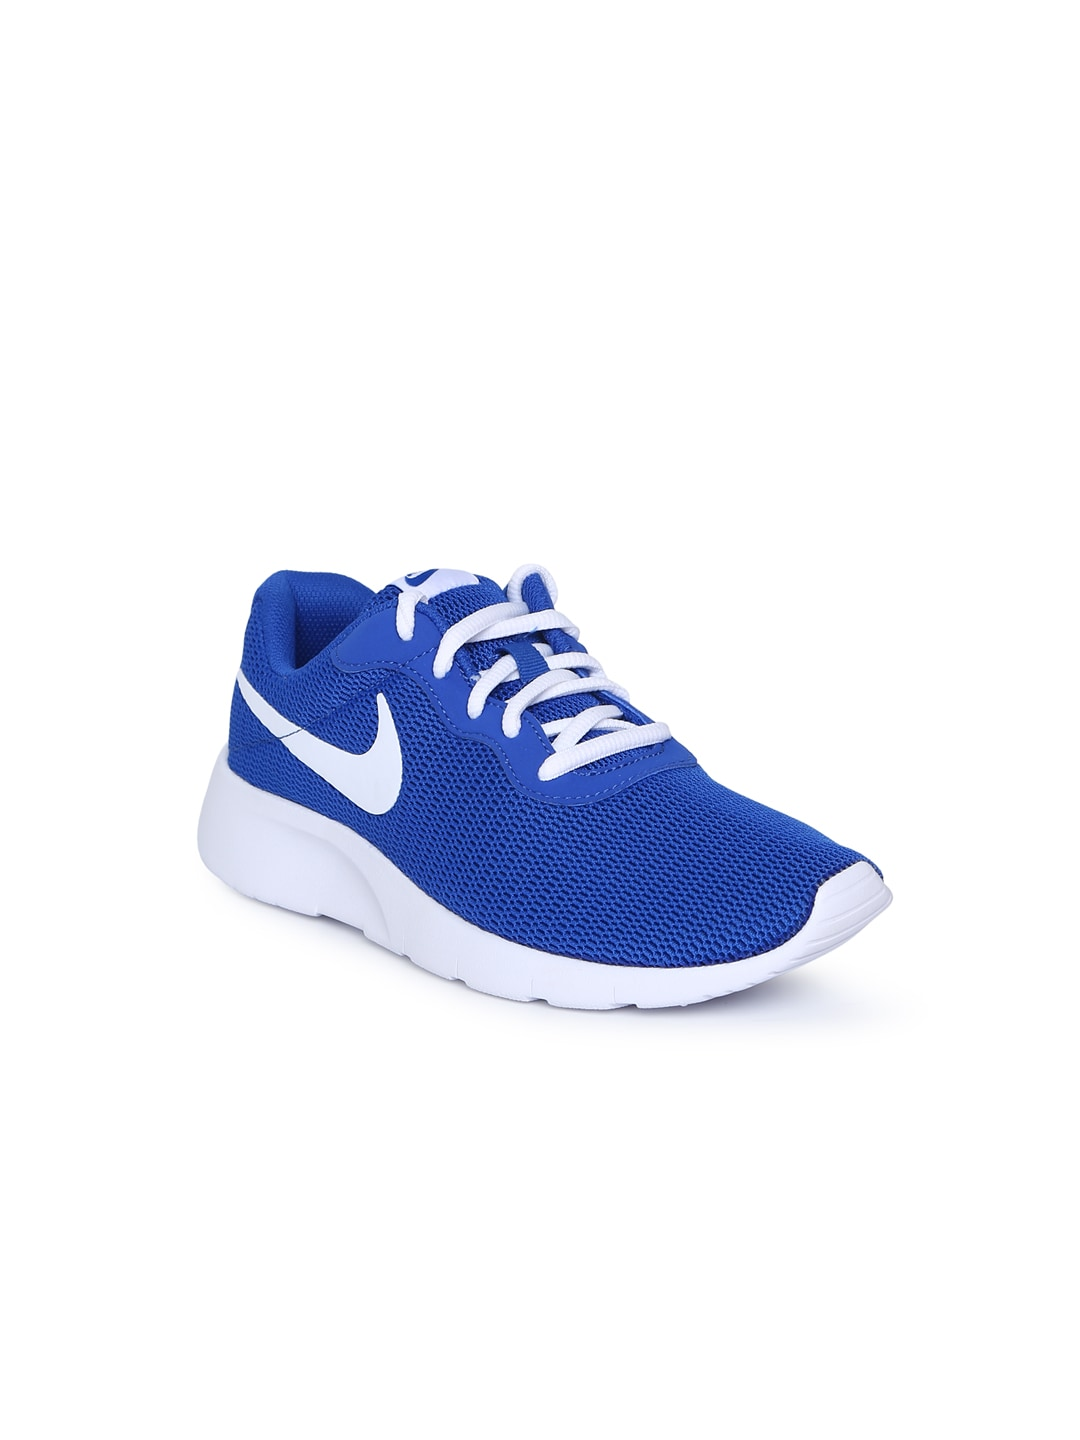 efc4e9da60dd Nike Kids Football Shoes - Buy Nike Kids Football Shoes online in India